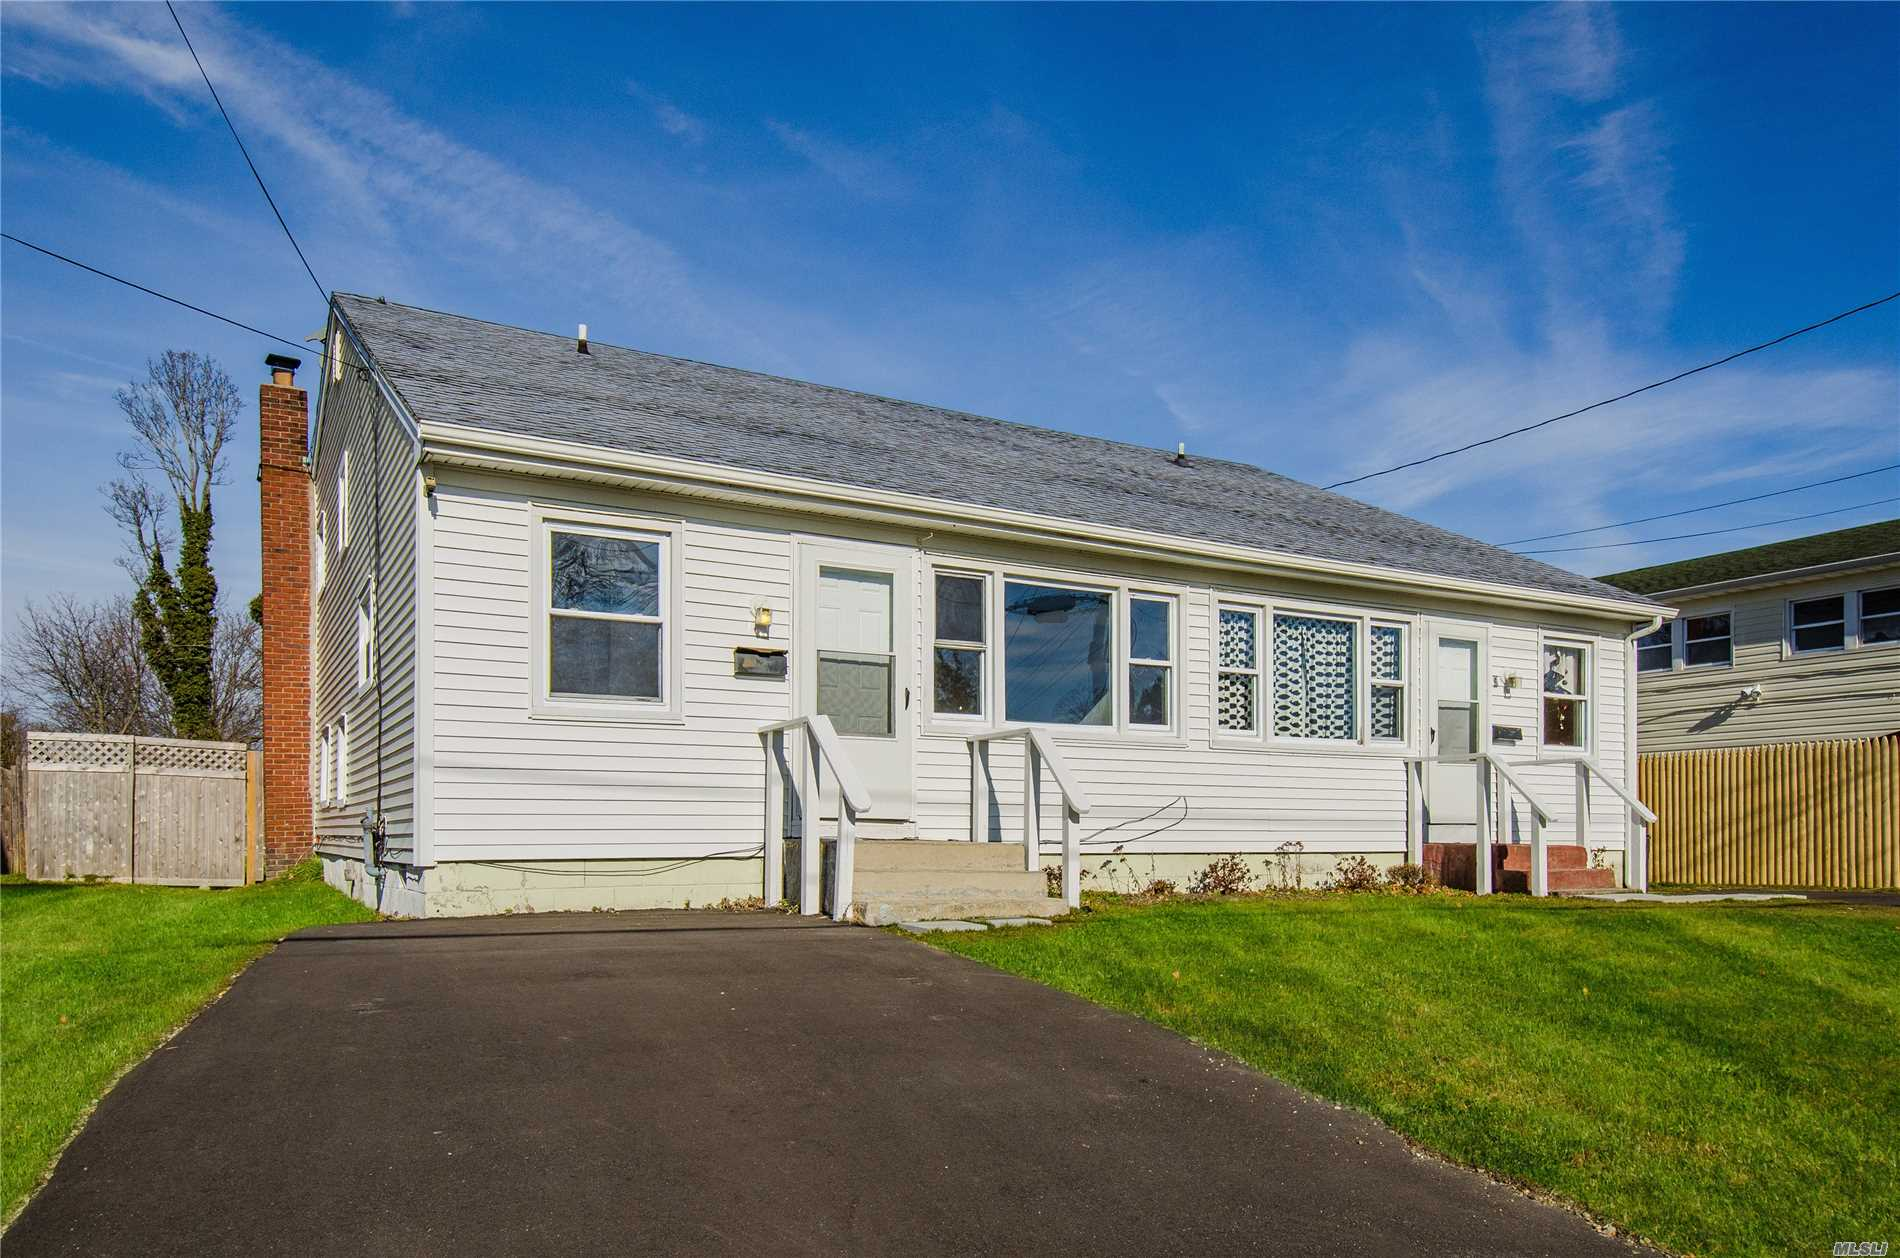 Wow!Why Rent When You Can Own Or Great Income Potential. A Very Unique Legal 2 Family Home In The Heart Of Patchogue Village, South Of Main St. One Unit Completely Renovated Like New.Quartz Counters, Stainless Steel Appliances, Hardwood Floors, 2 New Baths.The Other Rented For $2, 000 Until October 2020.Great Location Close To The Water, Fire Island Ferries, Train Station & The Vast Restaurants, Perfoming Arts Center & All The Popular Village Has To Offer.A Rare Opportunity & Must See!!